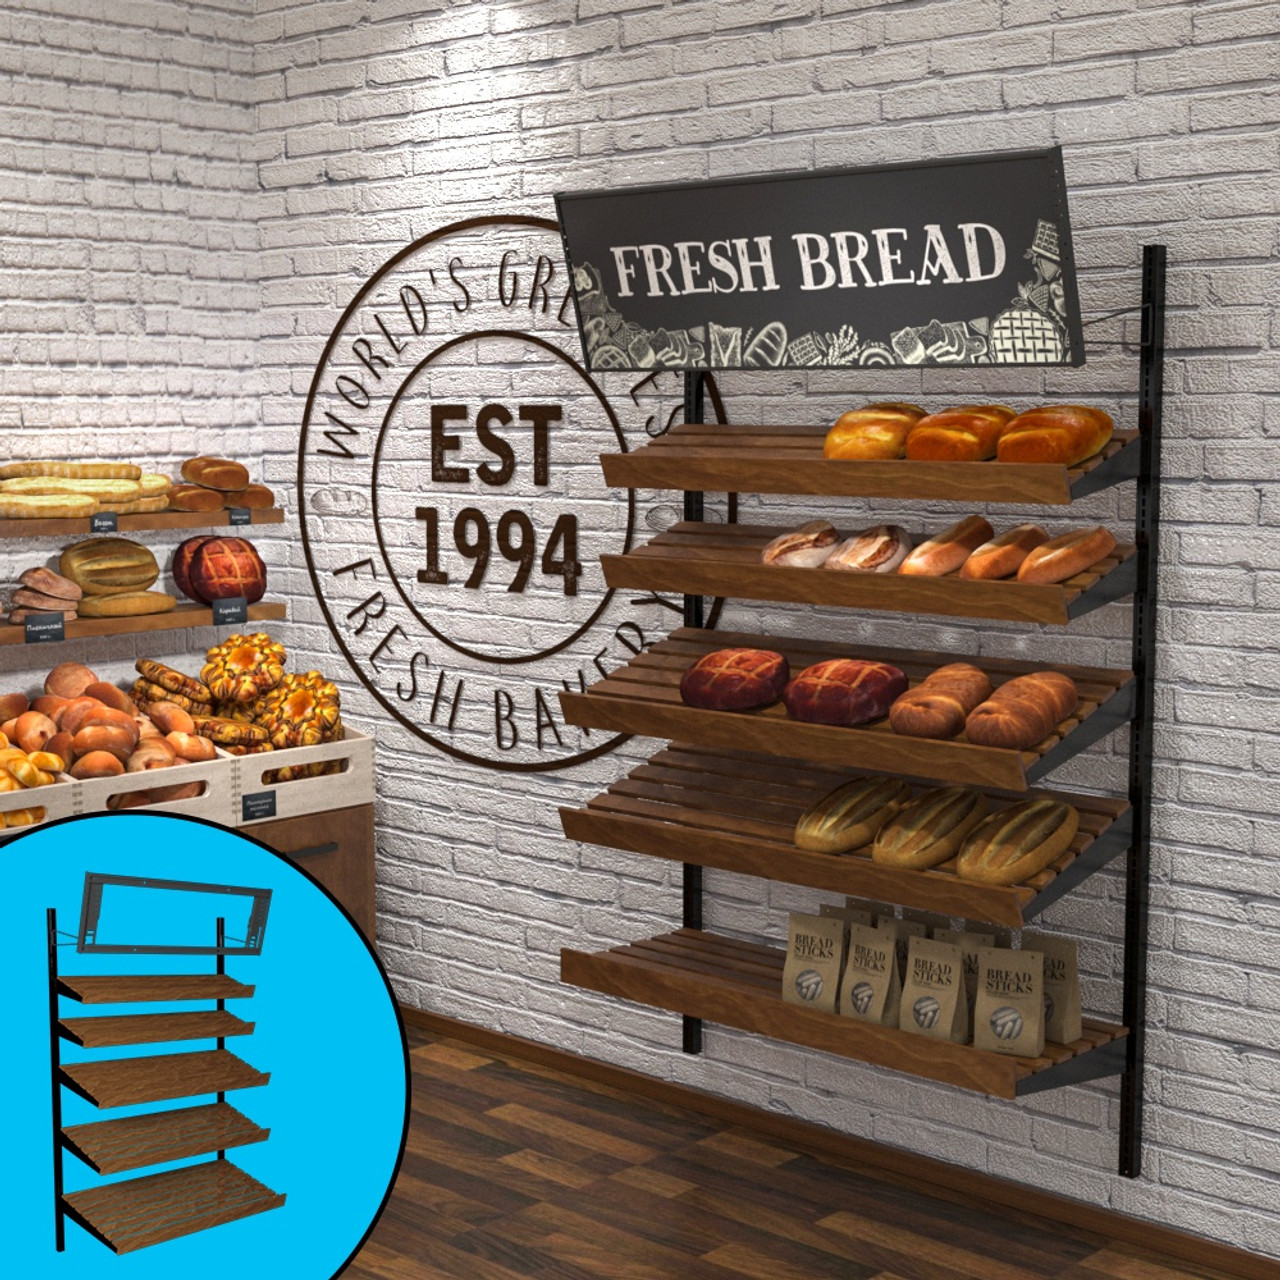 Lozier Slotted Wall Upright Bakery Displays Dgs Retail